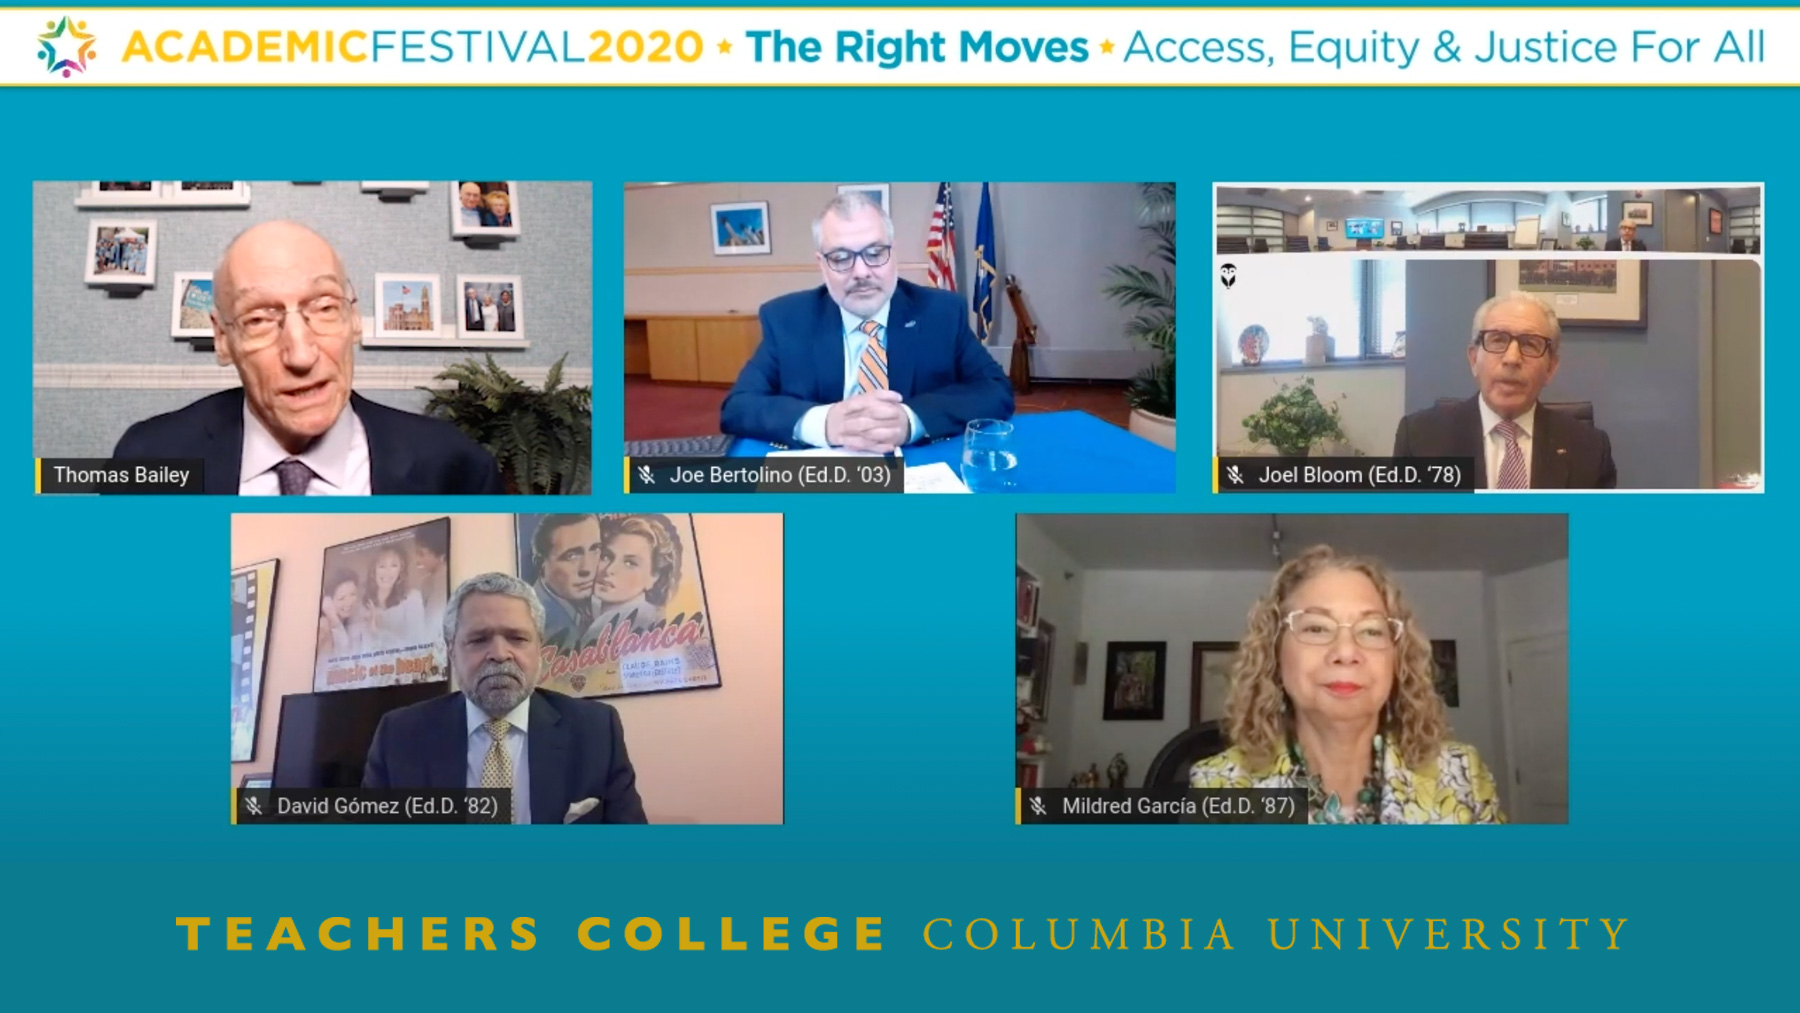 Academic Festival 2020 Higher Education Panel